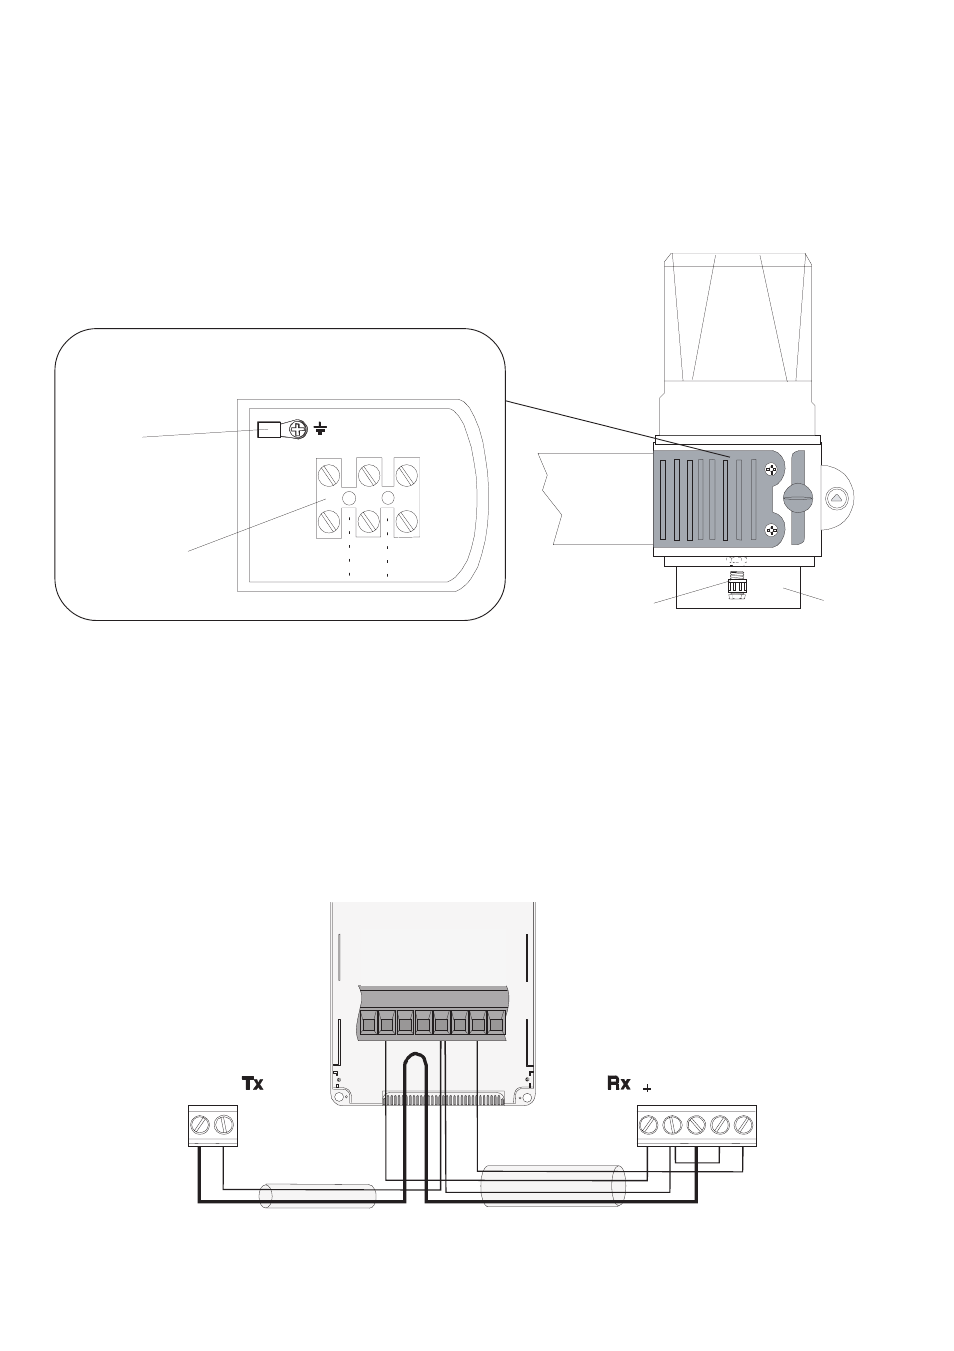 5 - wiring the motors, 6 - wiring in the safety photocells ... Came Photocell Wiring Diagram on simple photocell diagram, photocell sensor, photocell switch, photocell wiring directions, photocell schematic, photocell wiring guide, lighting contactor diagram, photocell control diagram, photocell installation, photocell lights, photocell wiring problem, circuit diagram,